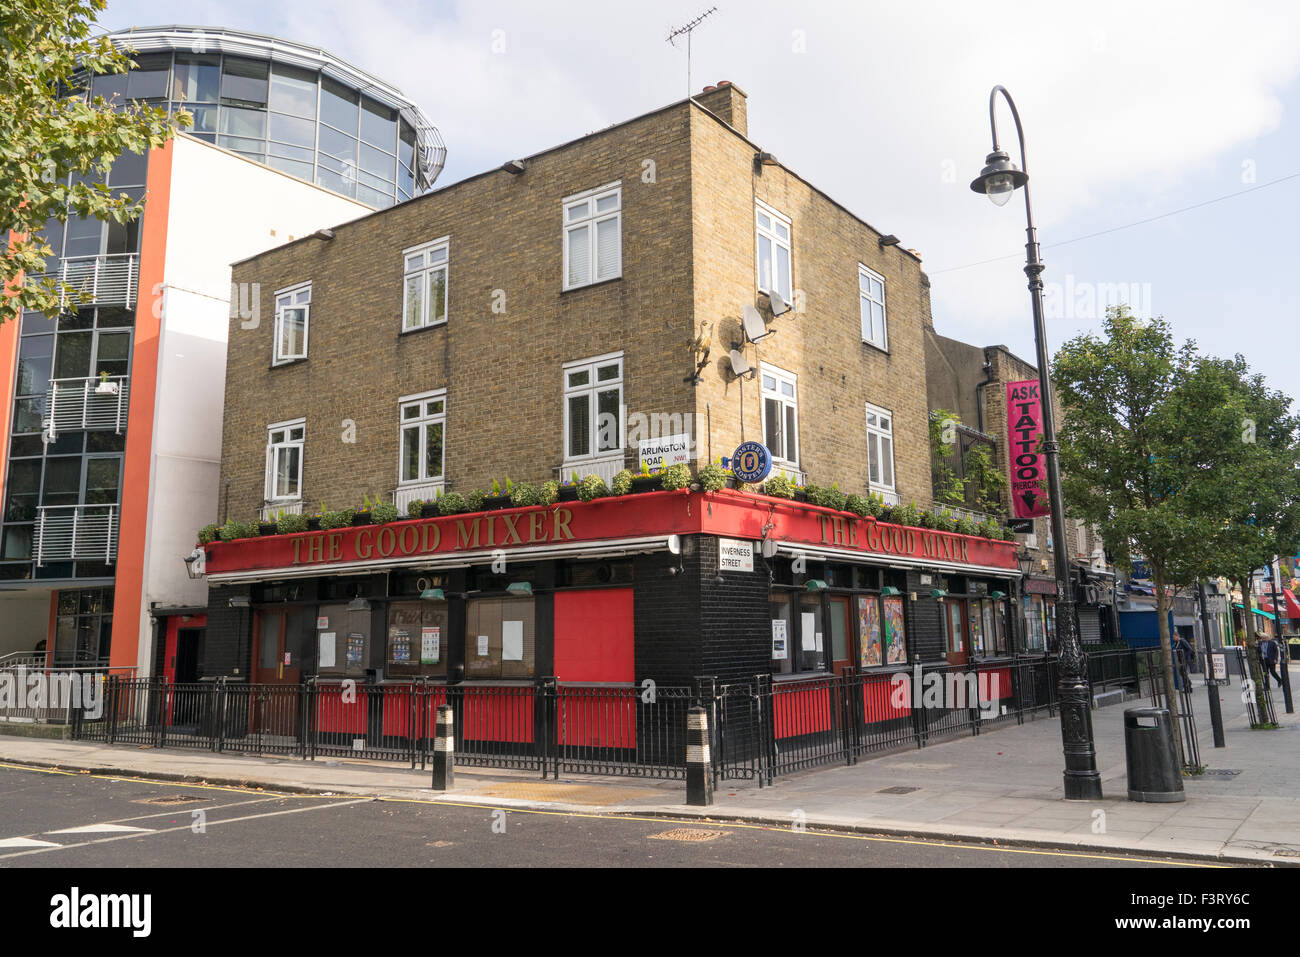 The Good MIxer Public House in Camden Town famous as a pub frequented by musicians - Stock Image